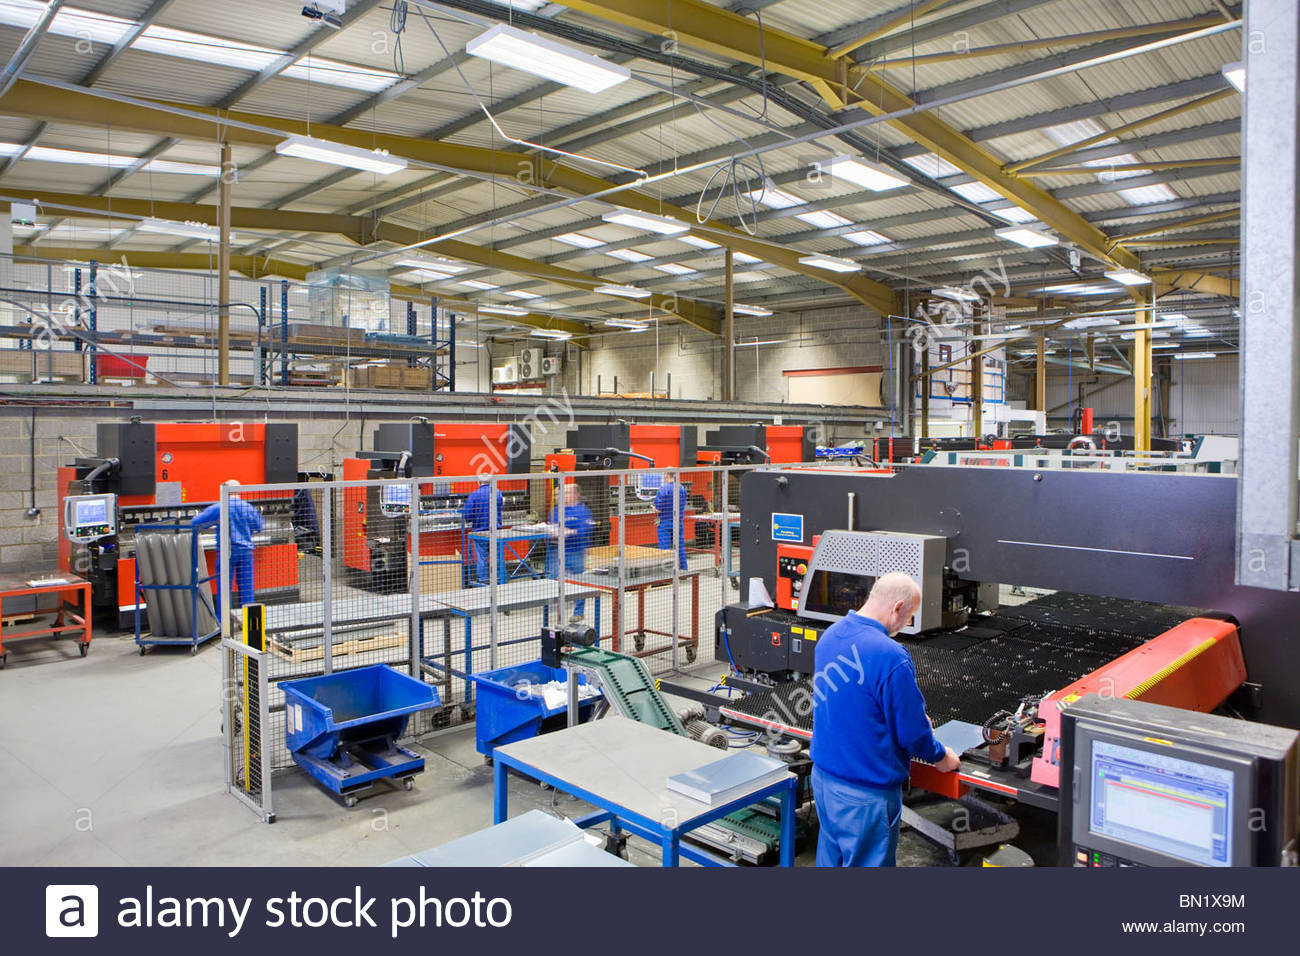 Worker inspecting aluminium light fitting at machinery in factory - Stock Image